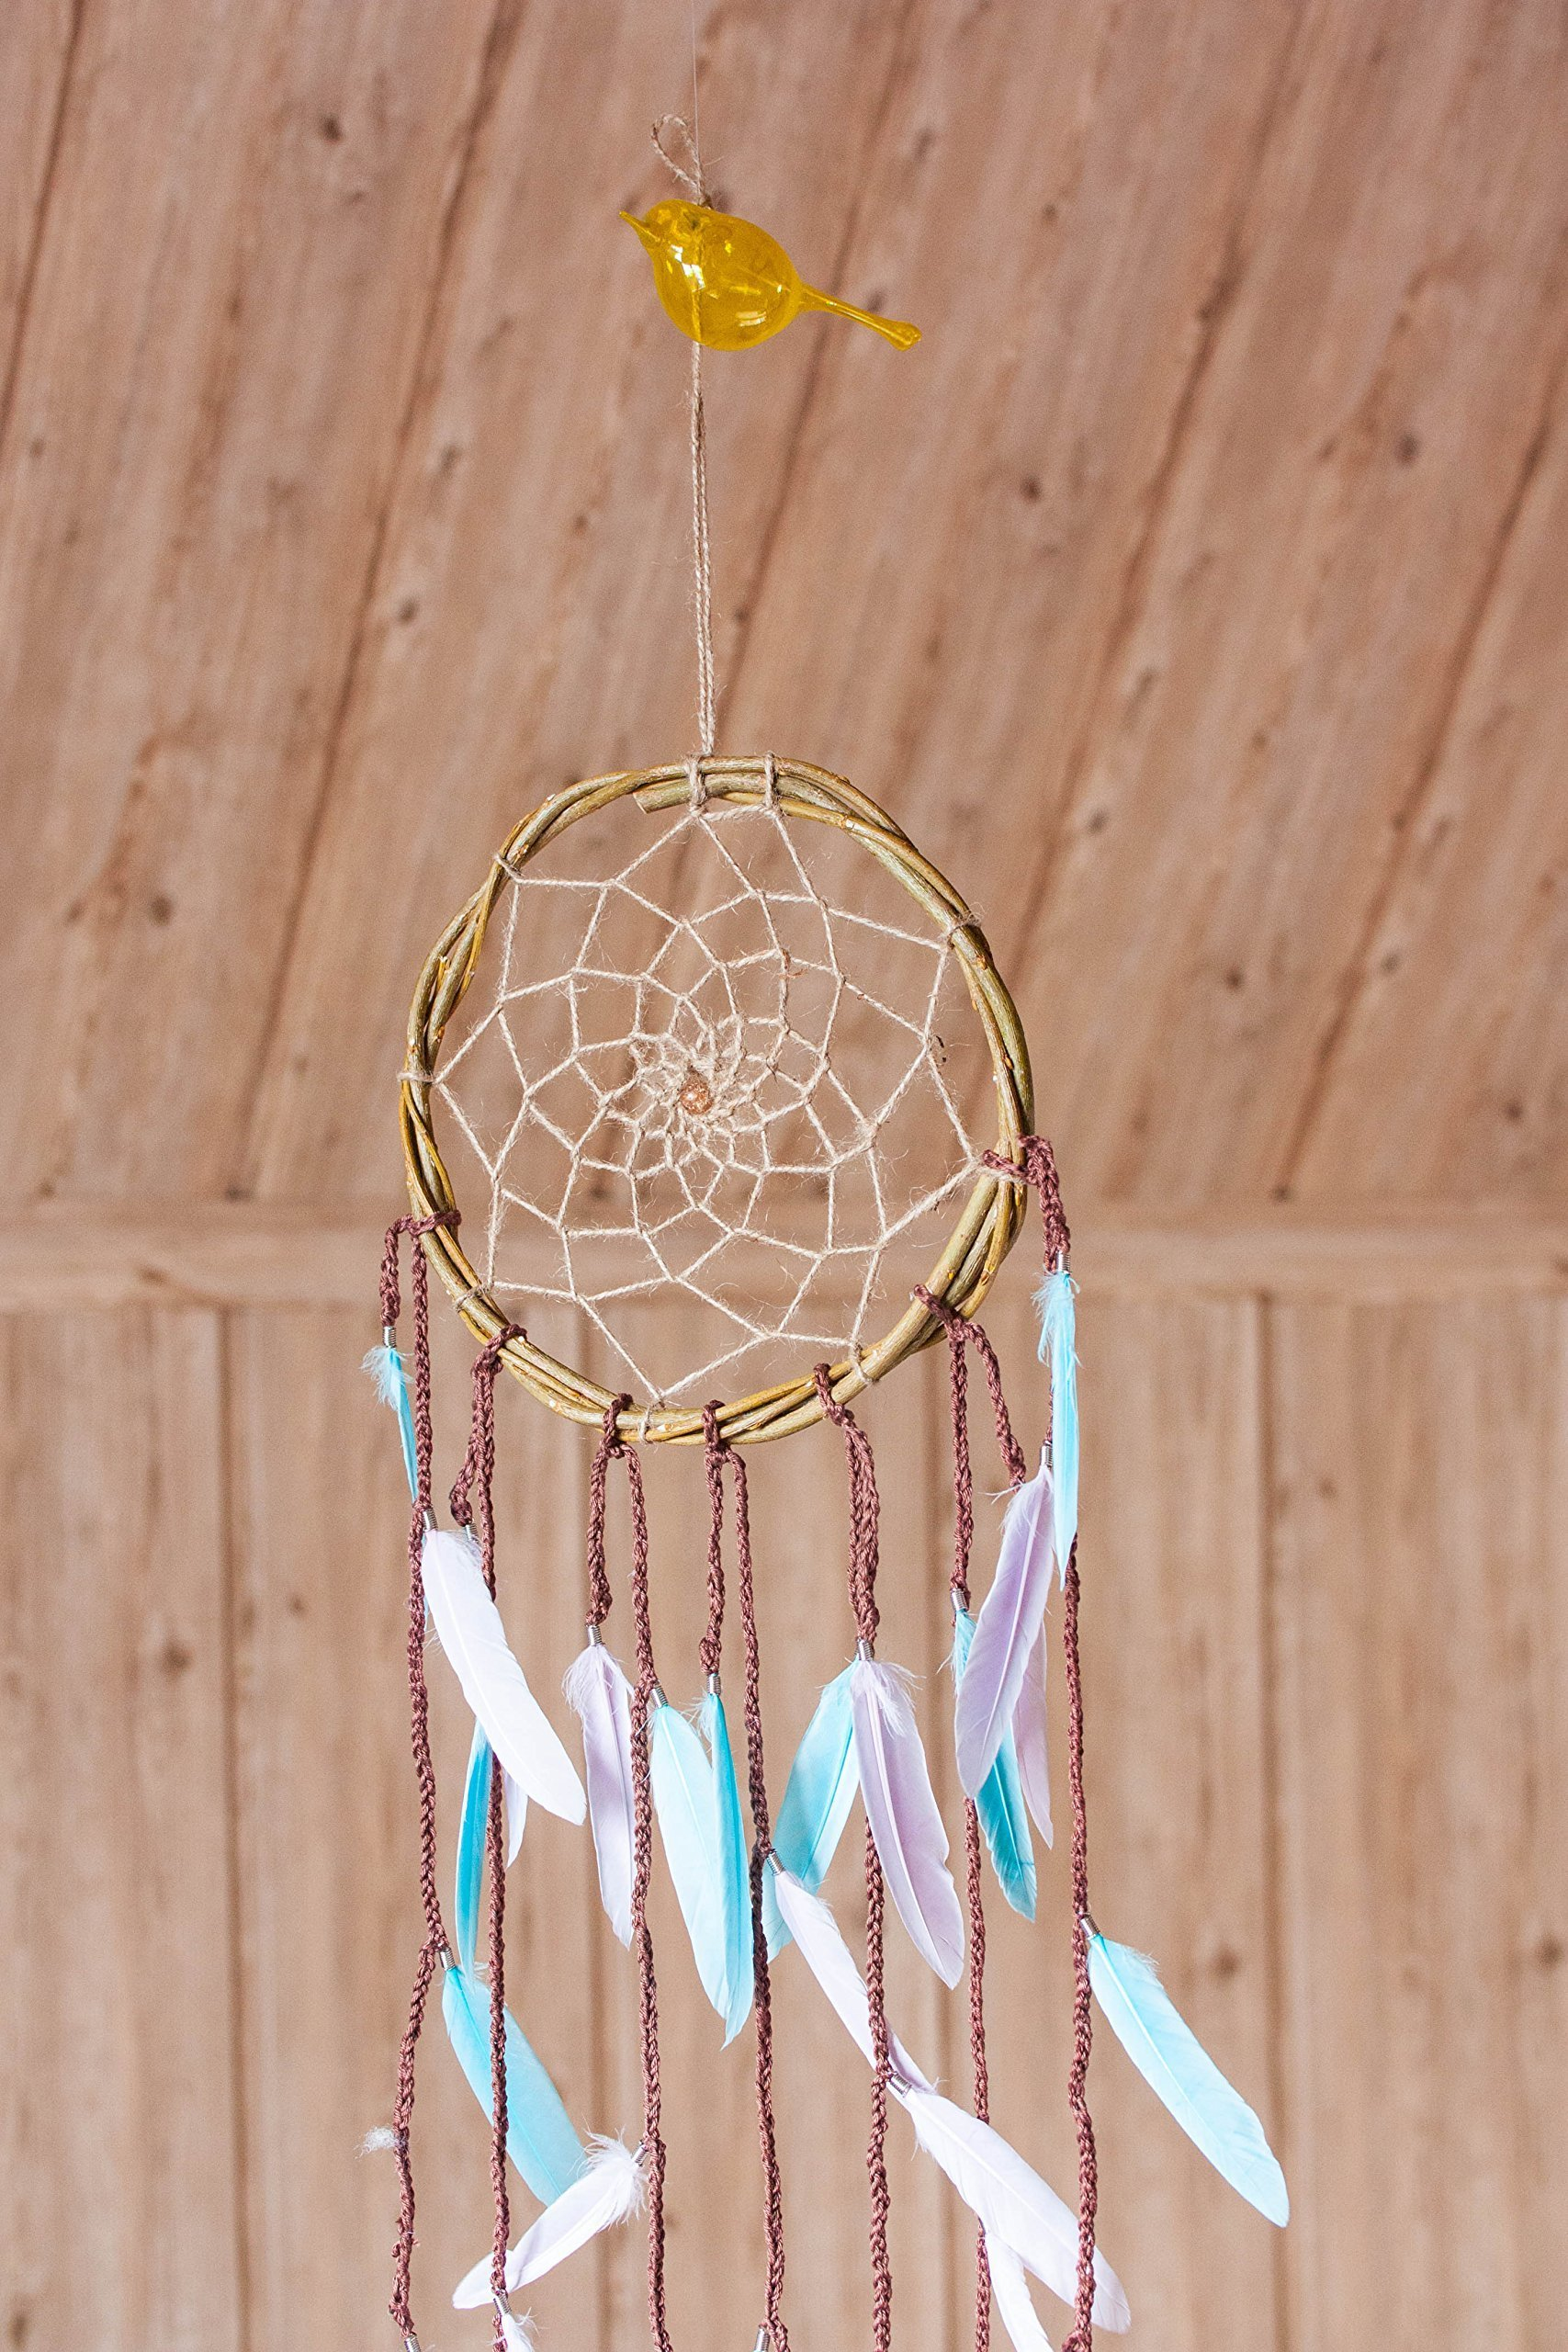 Willow Dream catcher with colorfull feathers, Diam 8 inches(20cm), Wall hanging Dream catcher, Boho dreamcatcher mobile